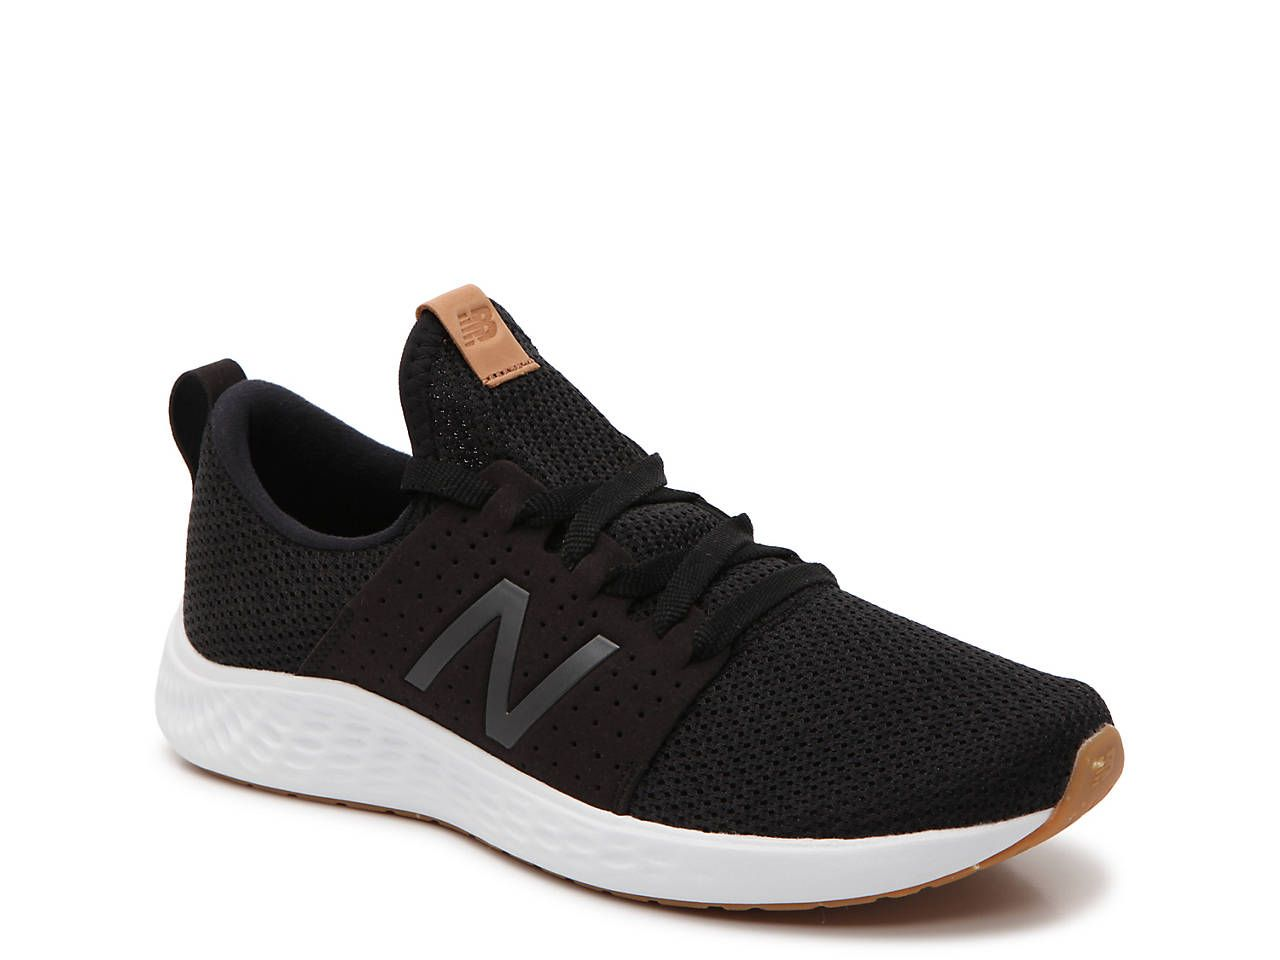 New Balance Fresh Foam Sport Lightweight Running Shoe